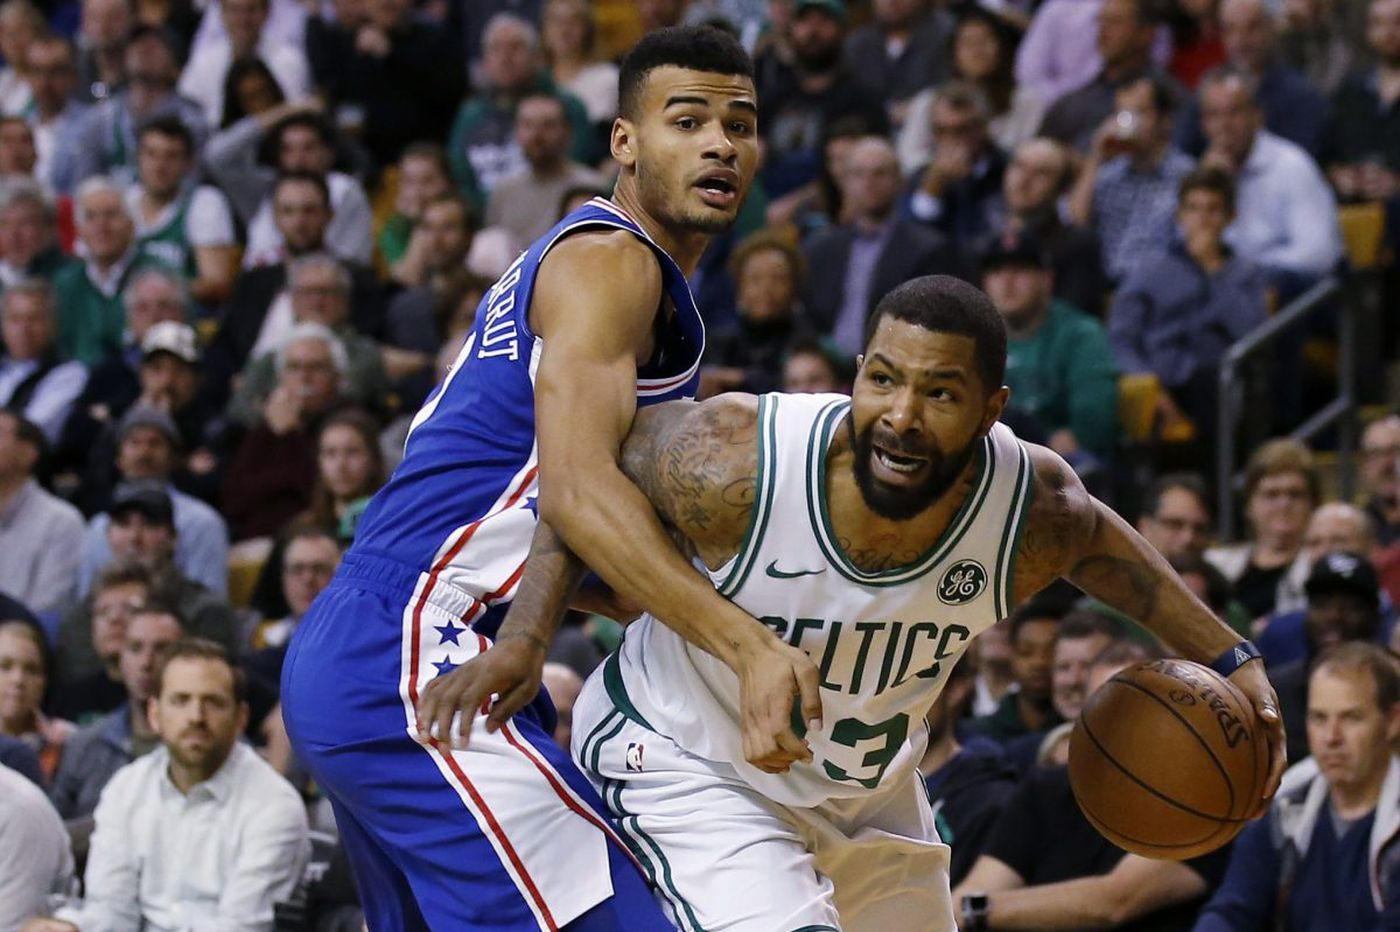 Celtics' Marcus Morris excited about facing his hometown team